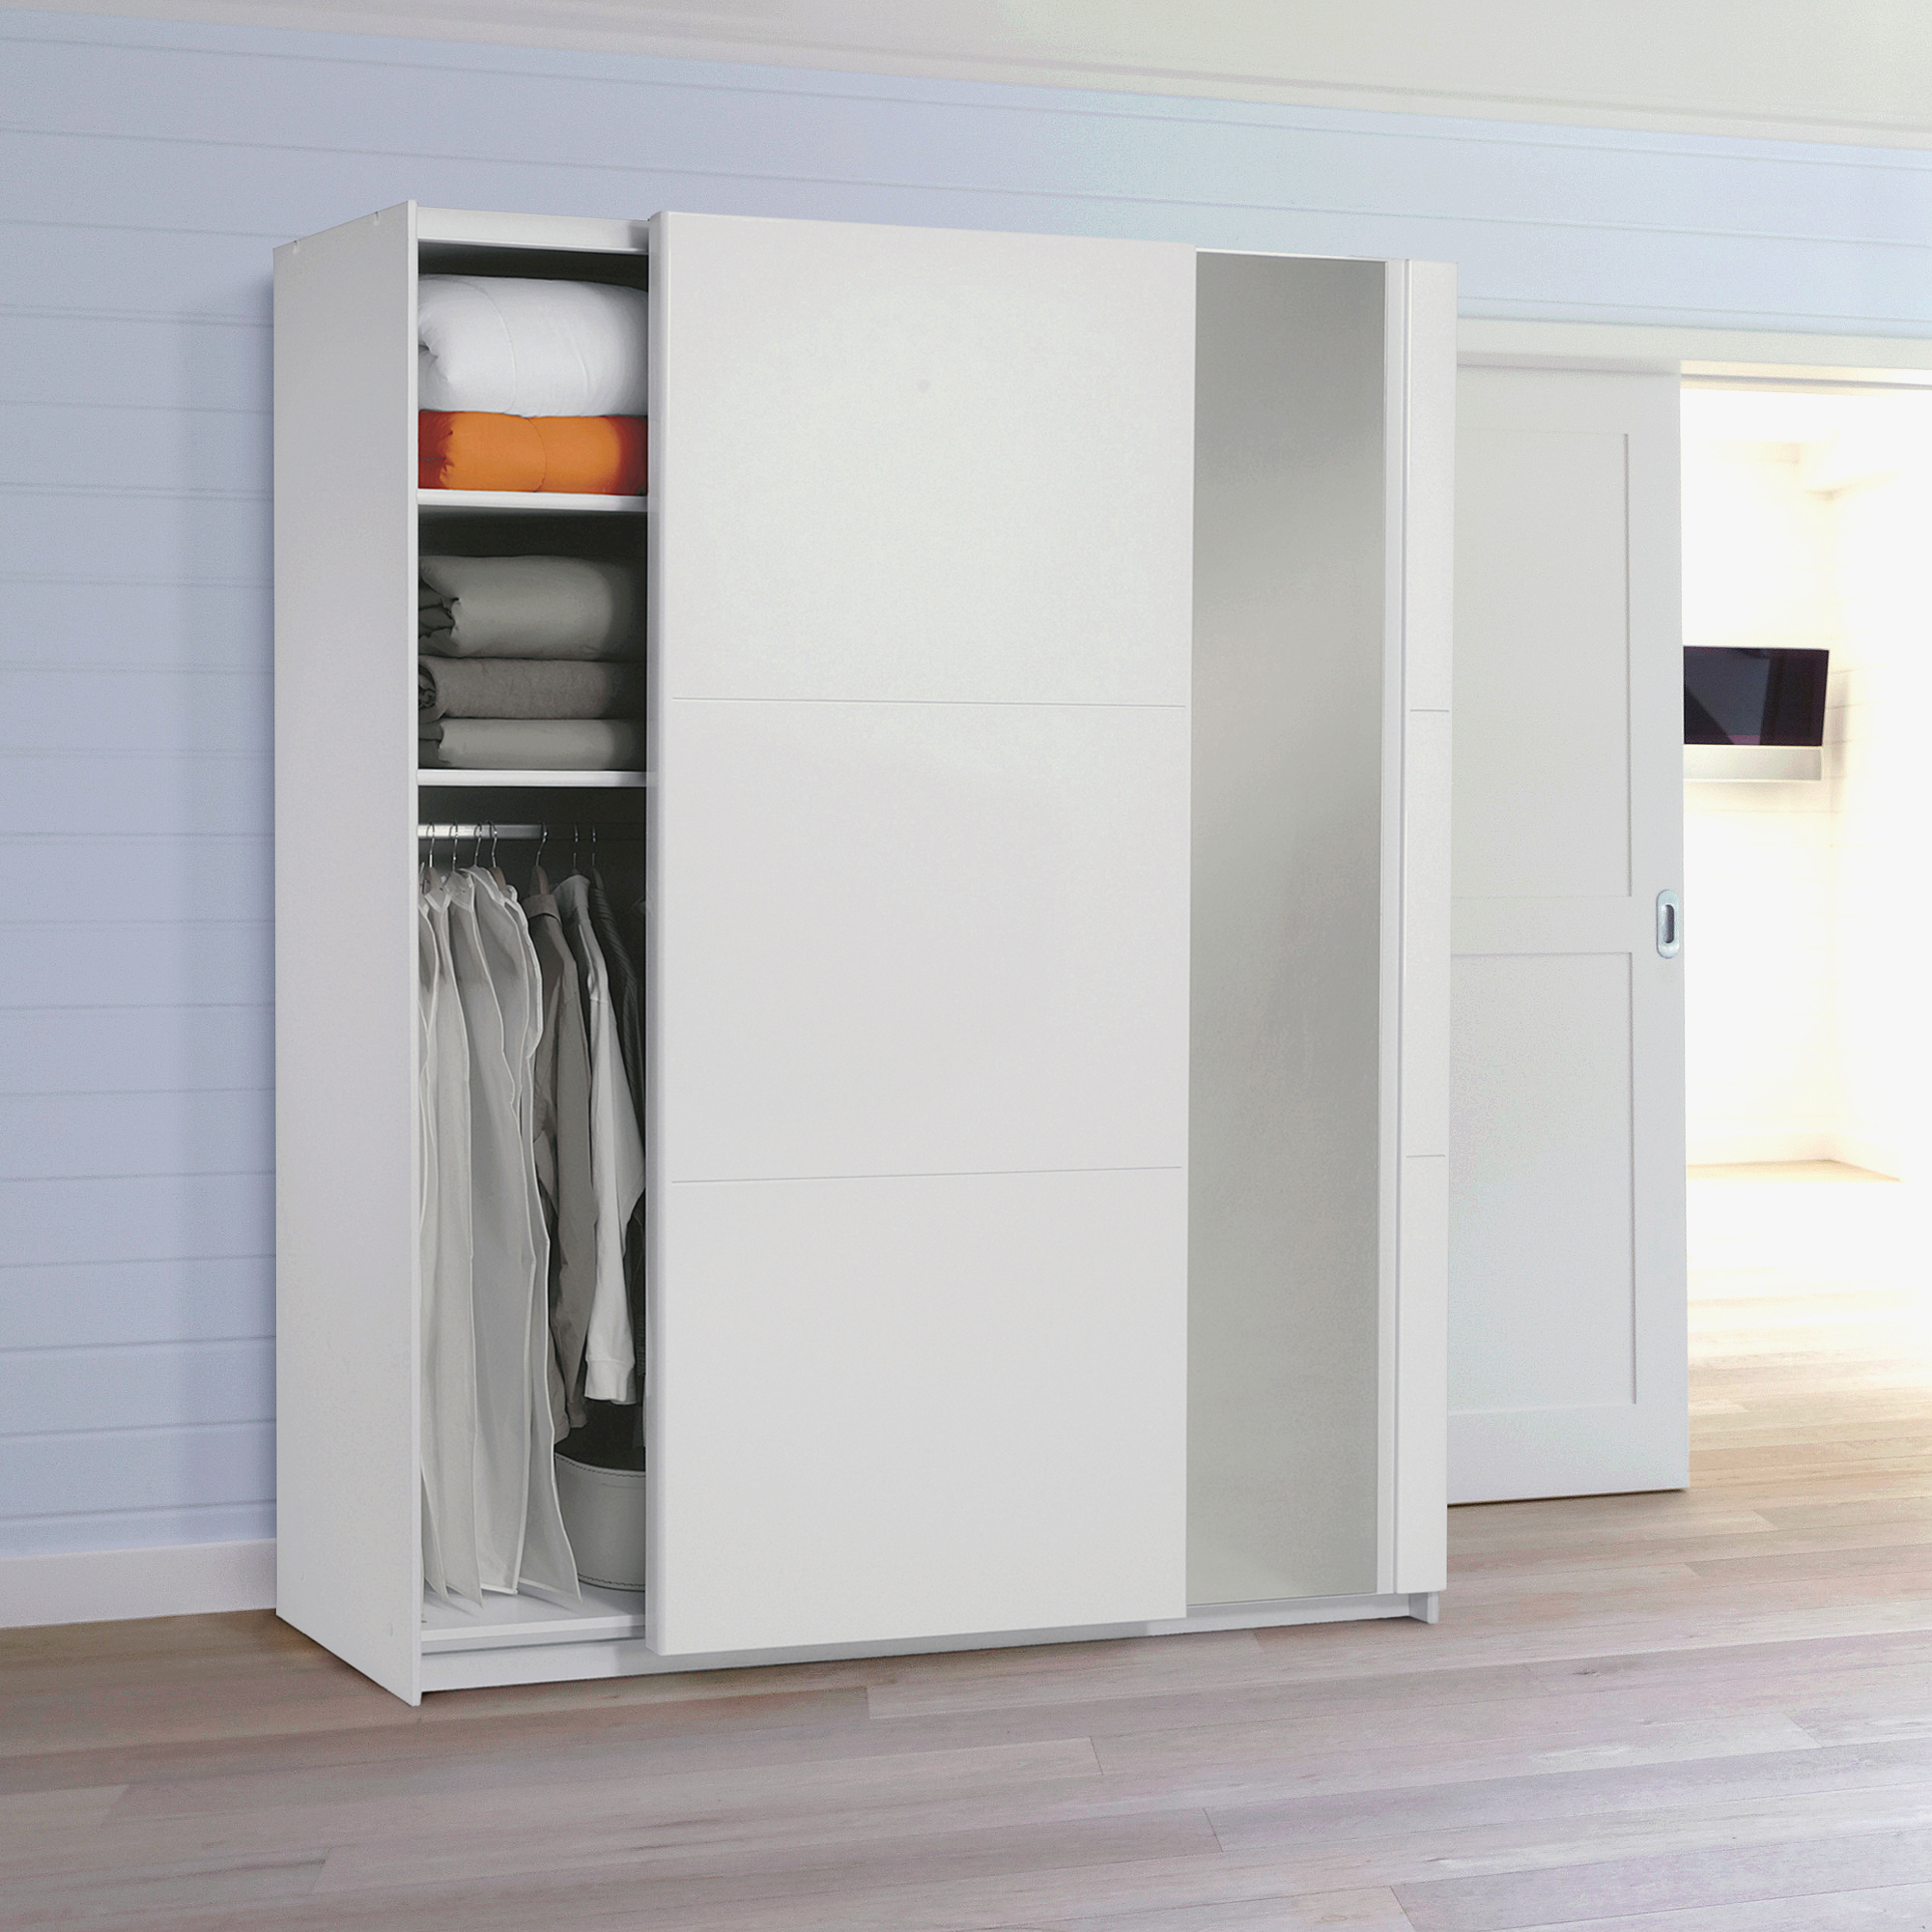 Le Meilleur Fly Armoire Porte Coulissante Stunning Affordable Ce Mois Ci